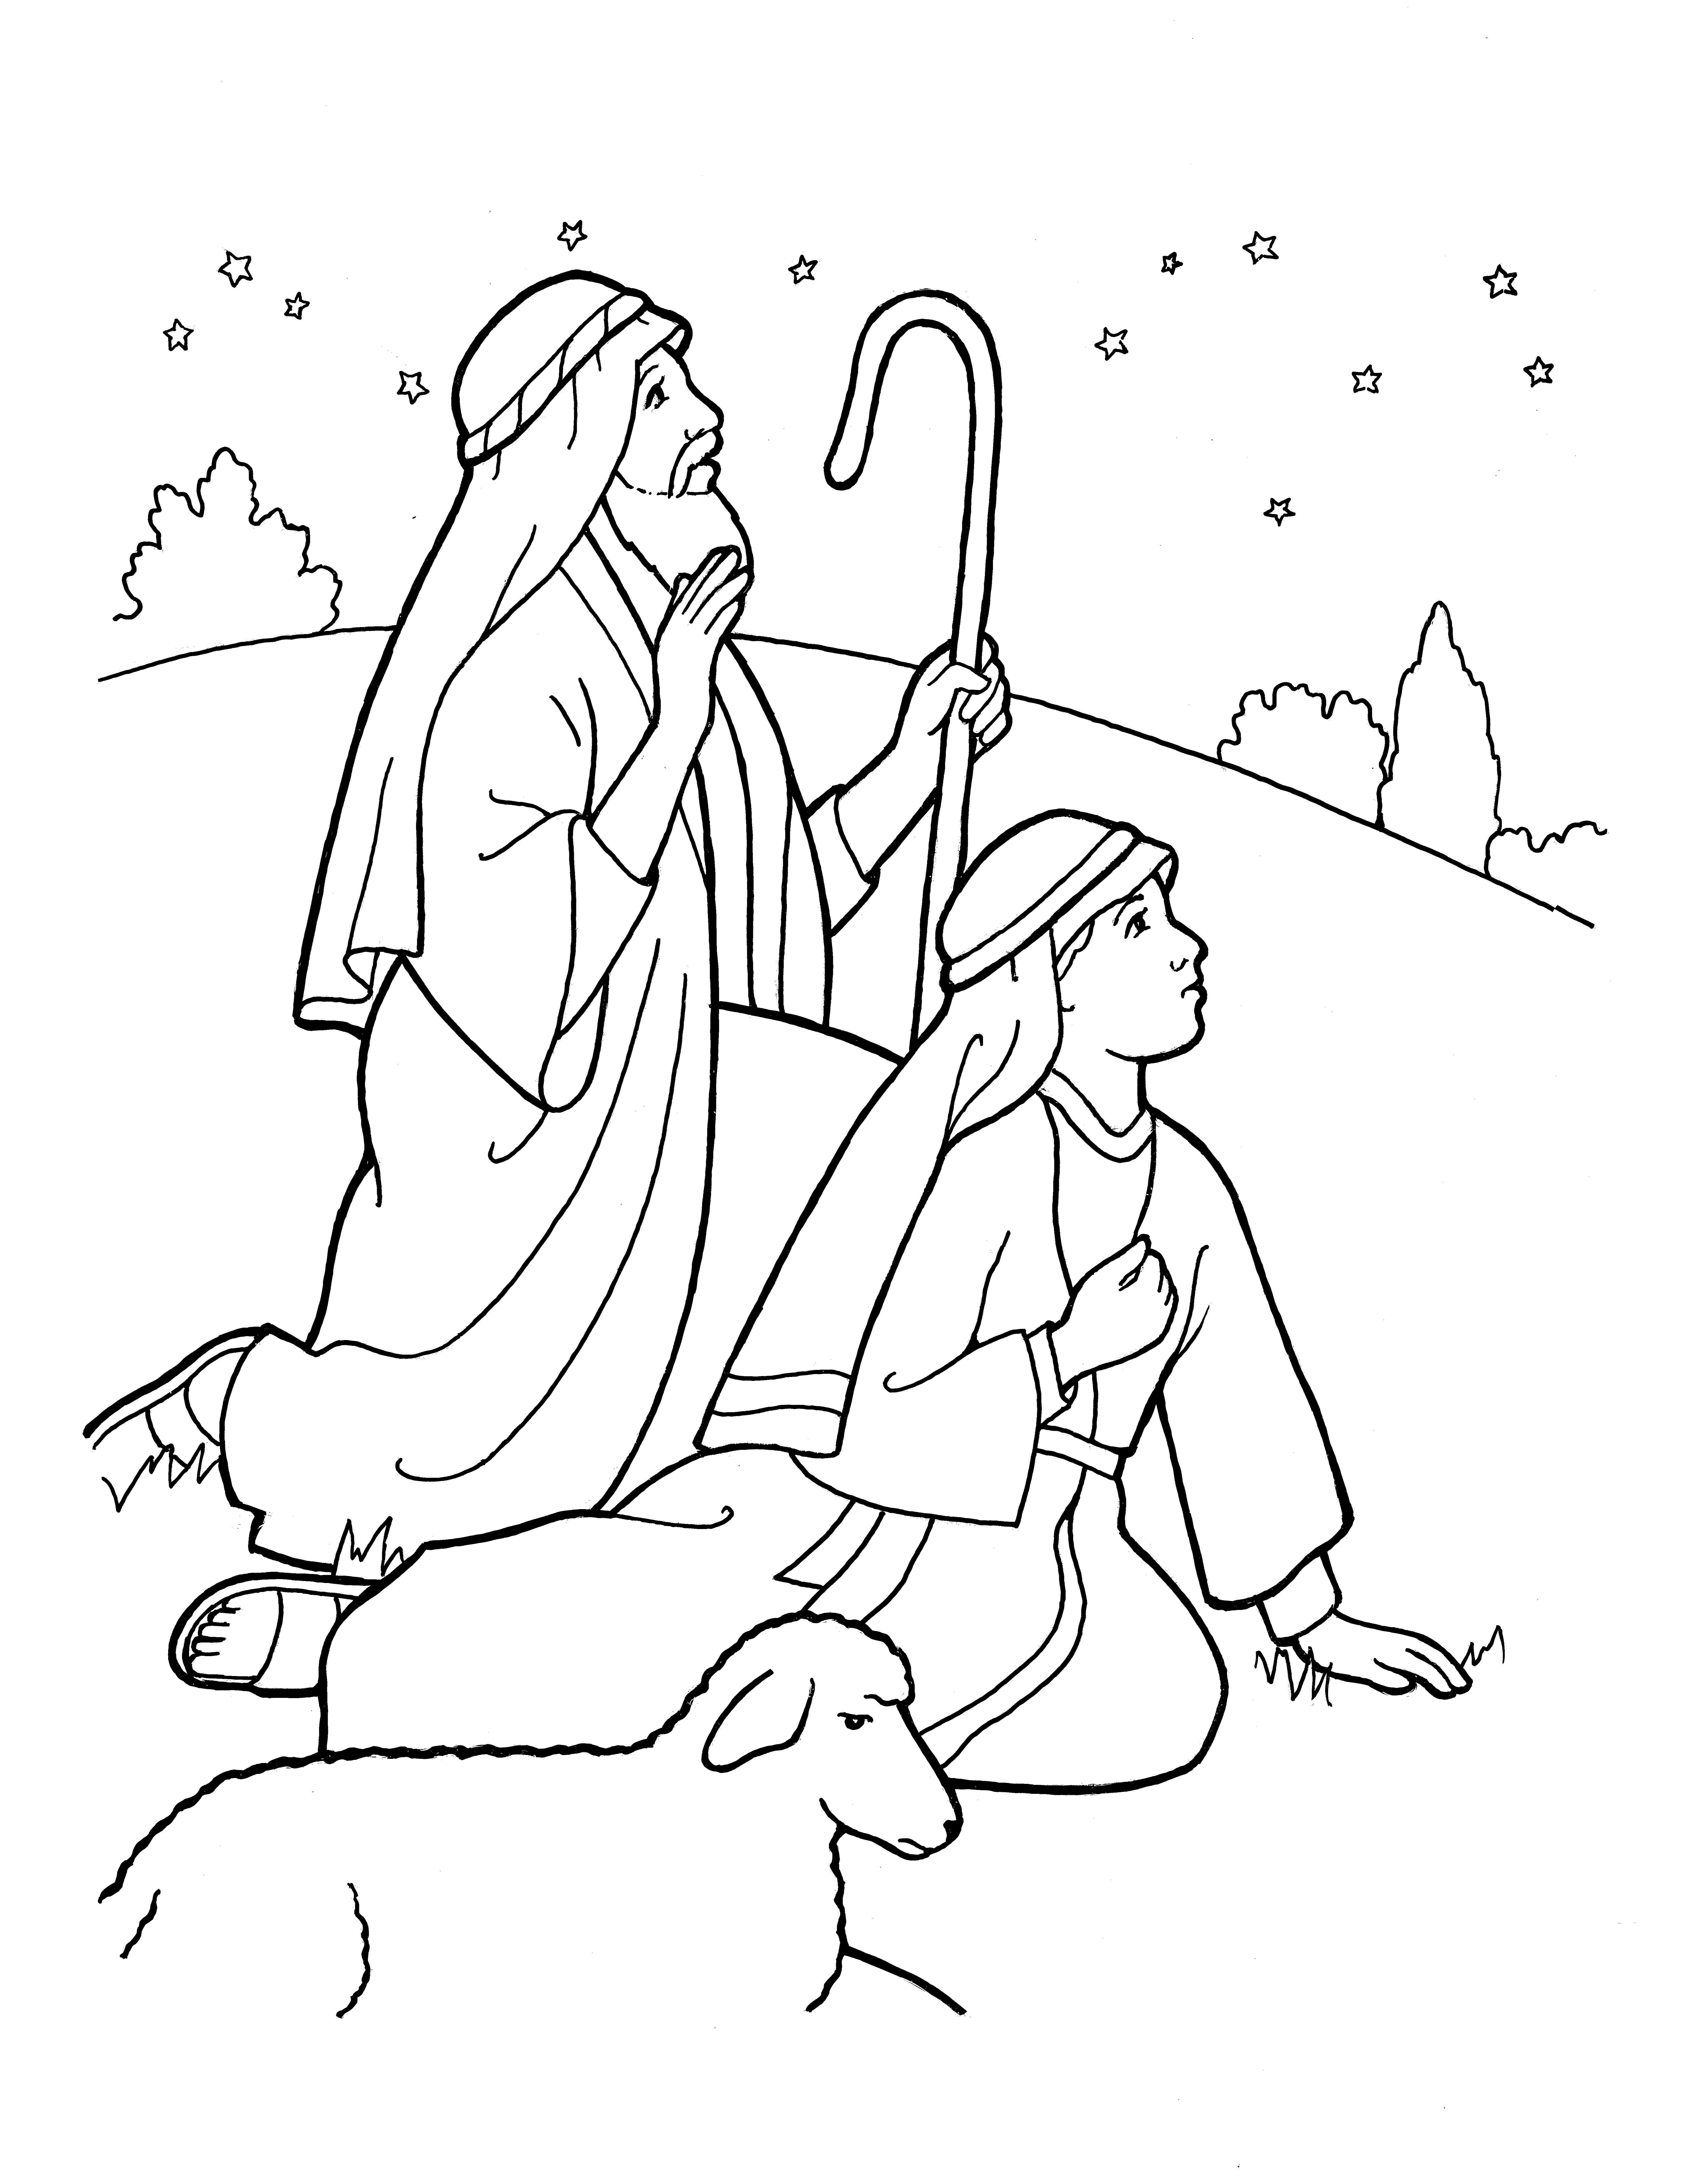 An illustration of the shepherds on Christmas night, from the nursery manual Behold Your Little Ones (2008), page 127.